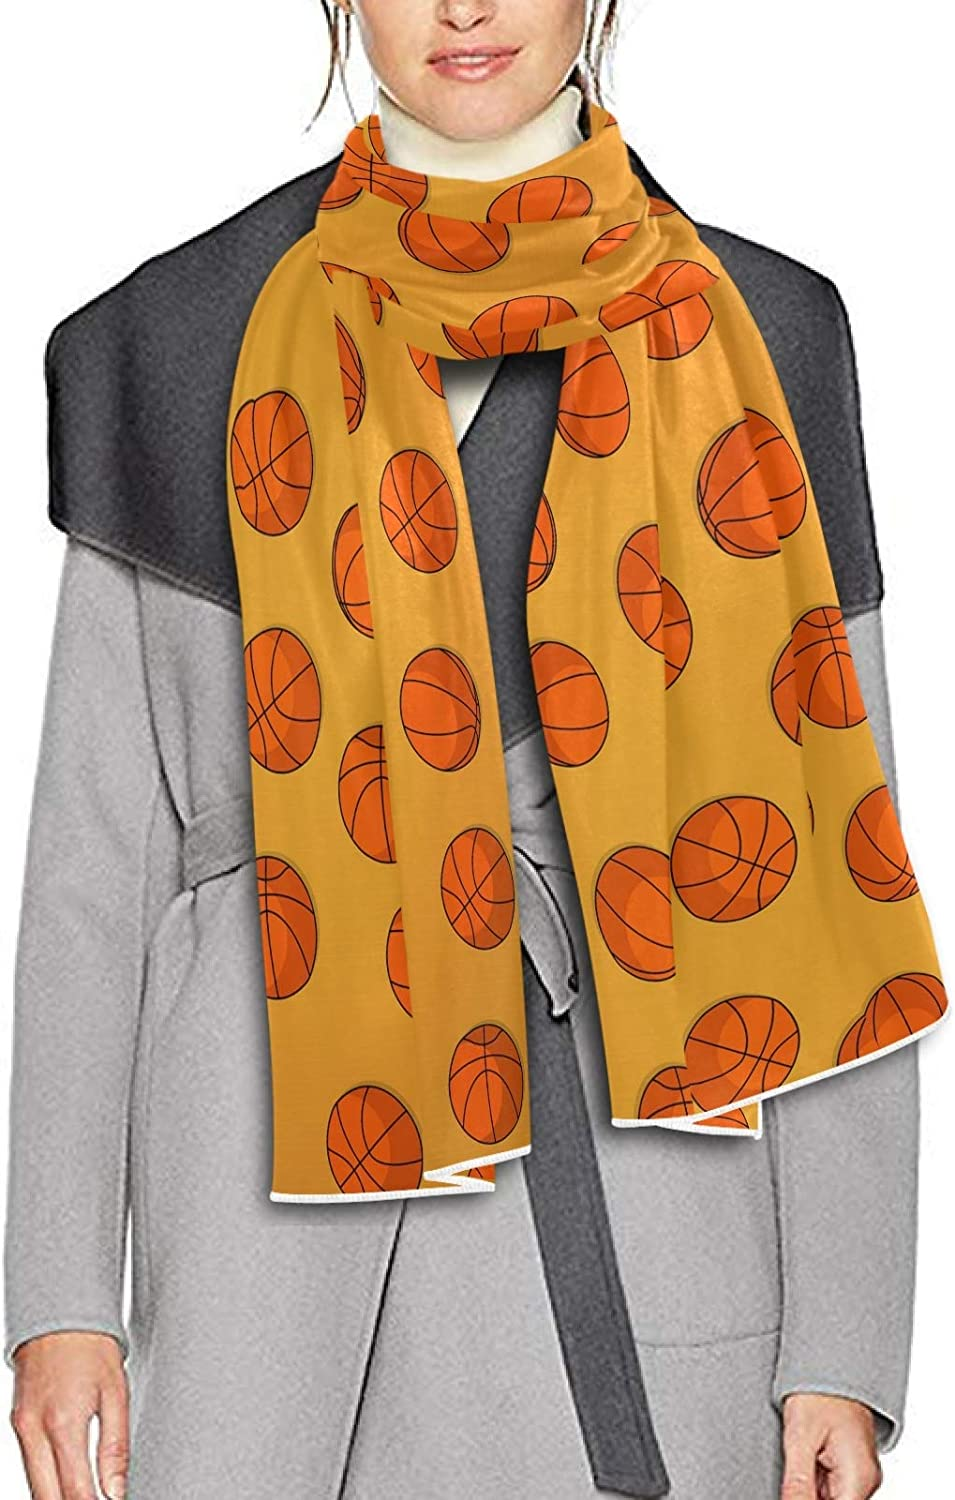 Scarf for Women and Men Basketballs Yellow Shawls Blanket Scarf wraps Soft warm Winter Oversized Scarves Lightweight